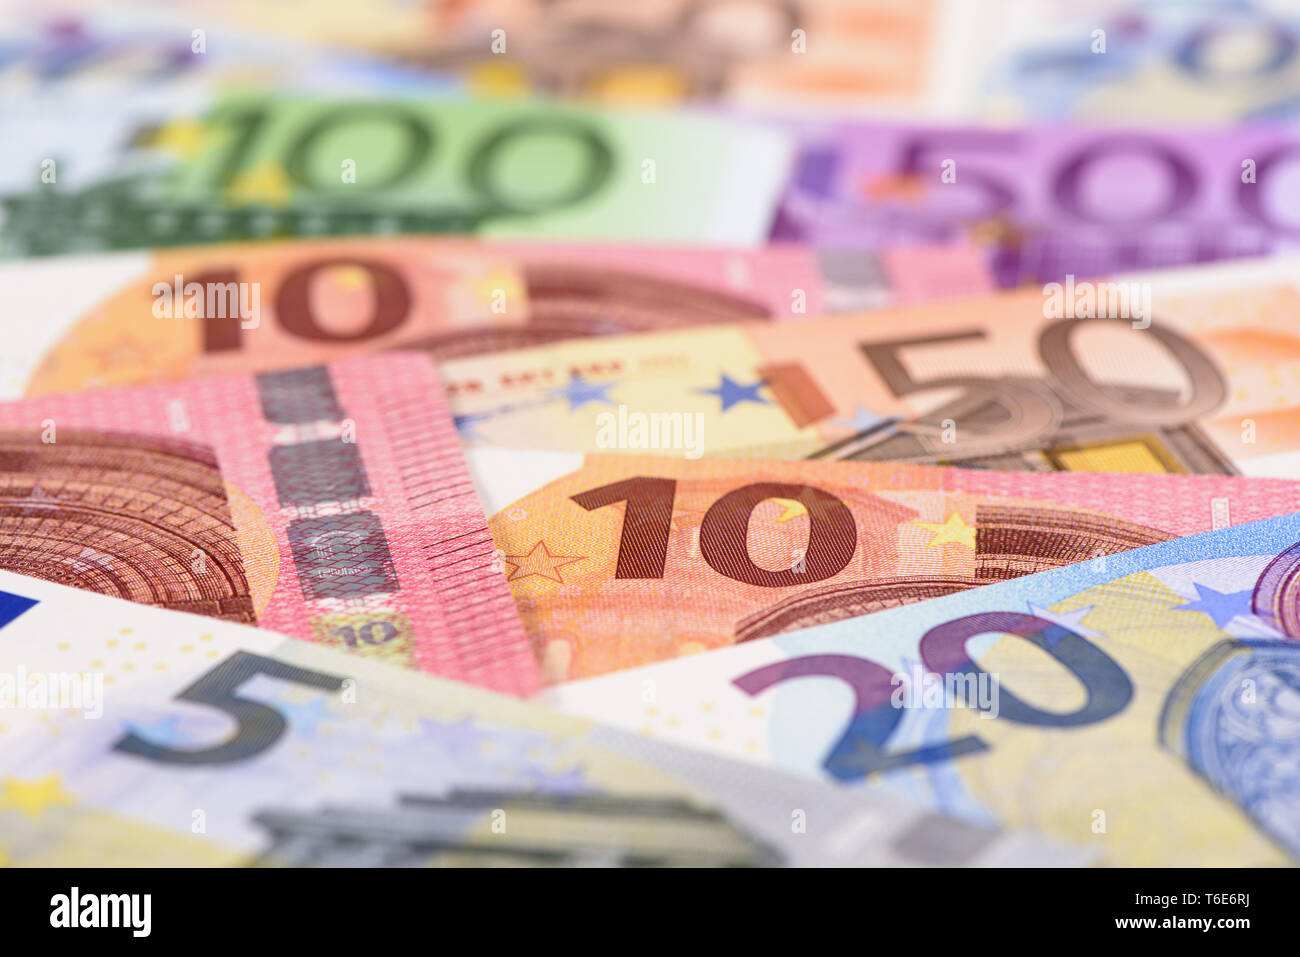 group of many Euro banknotes laying on table Stock Photo